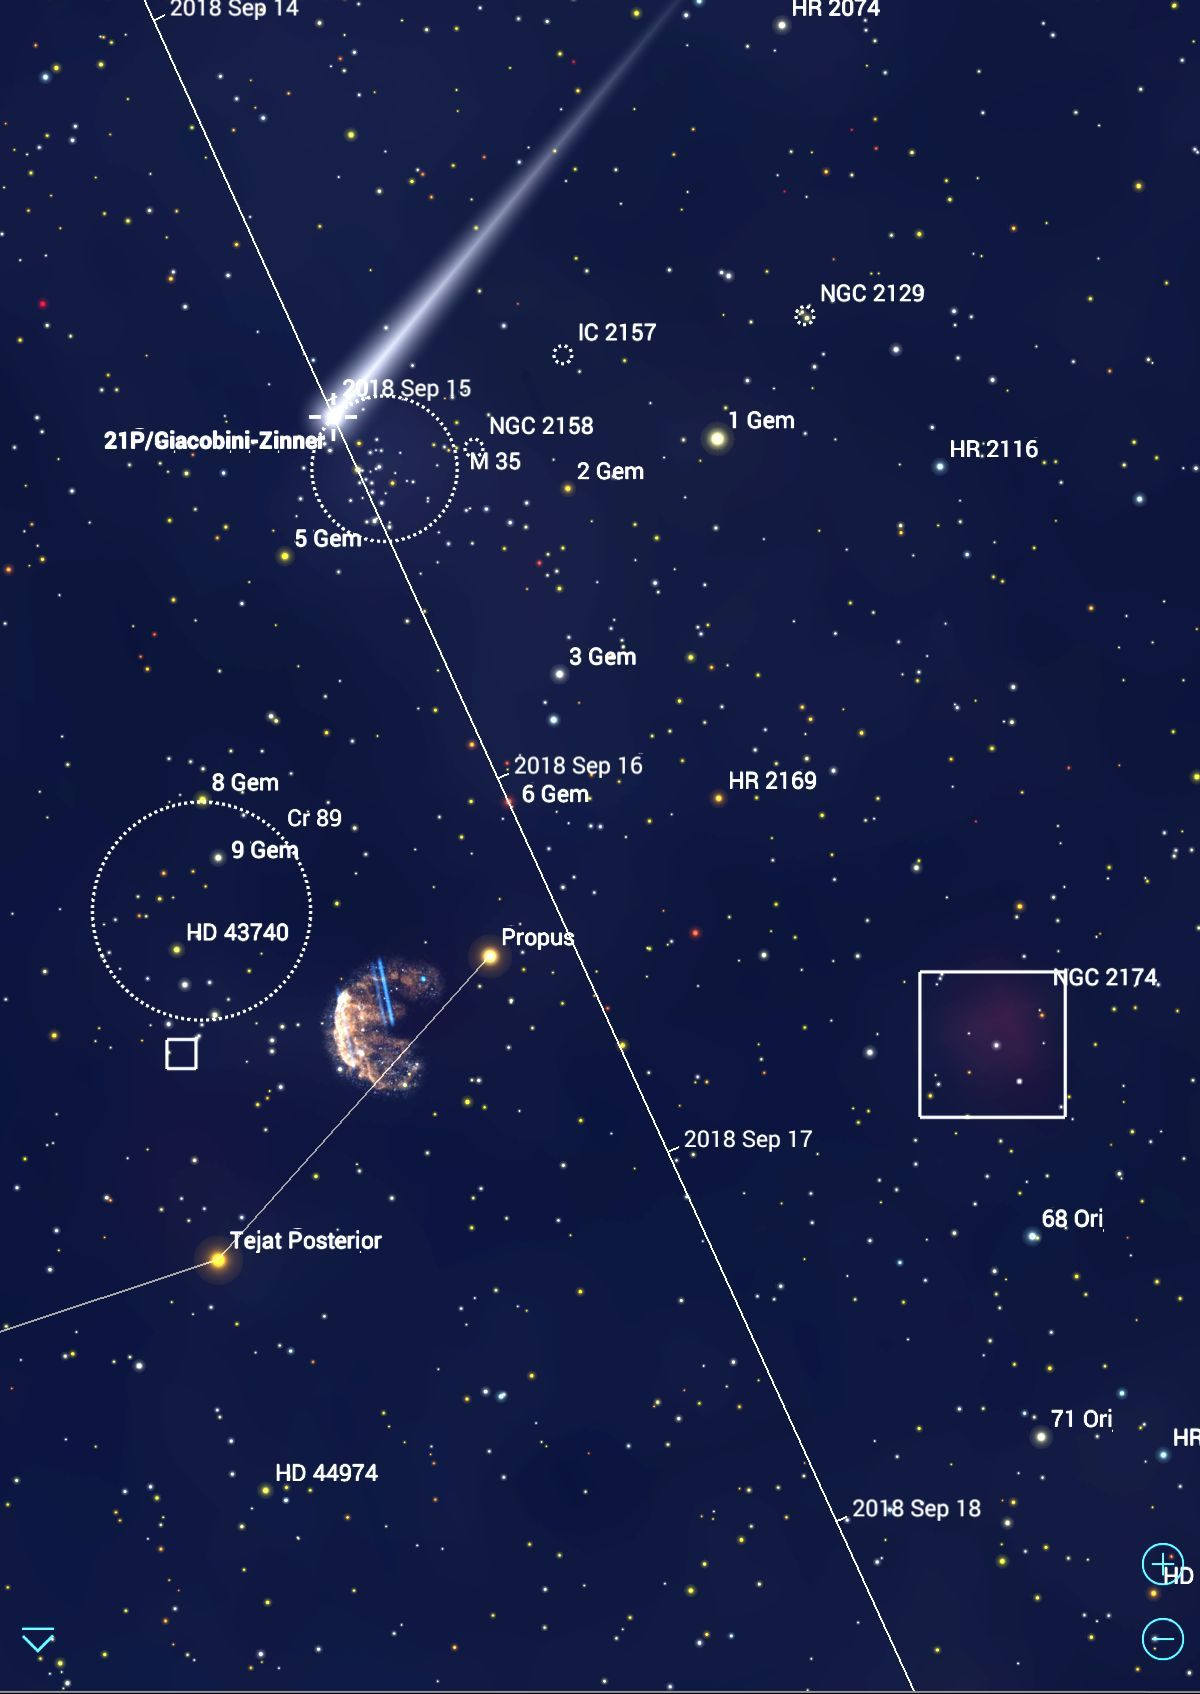 Spotting the Comets of 2018 and Tracking Their Spectacular